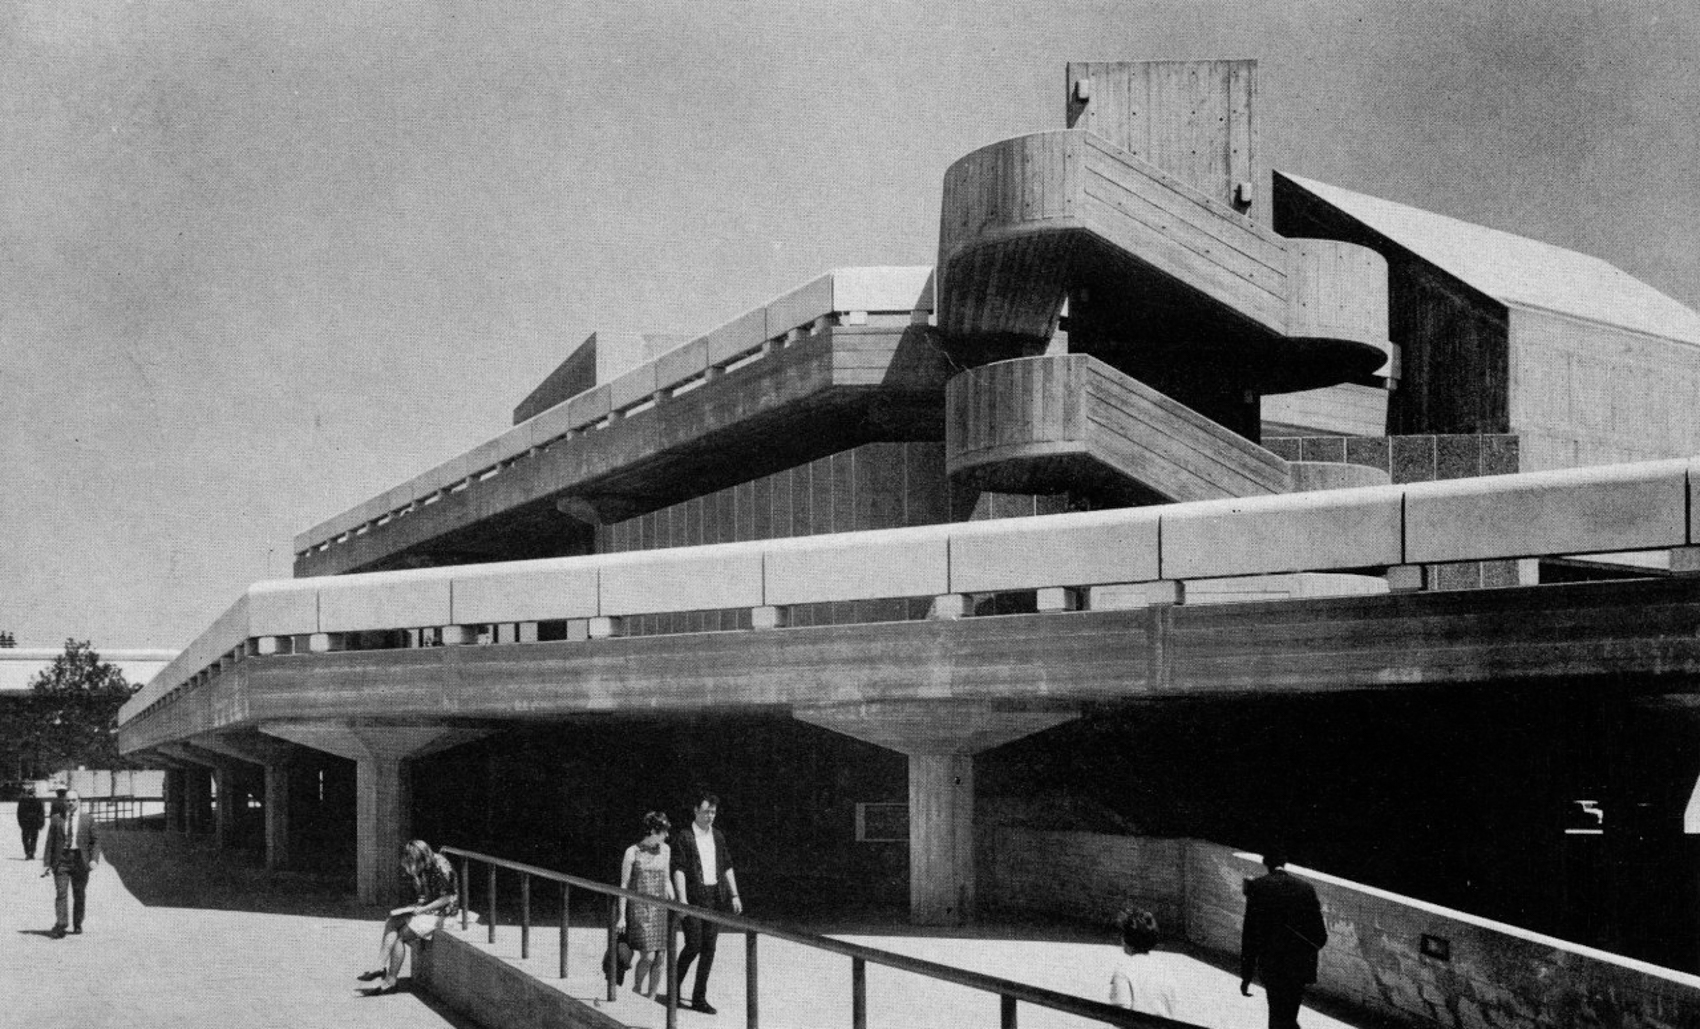 Vintage imagery of the Southbank Centre, London